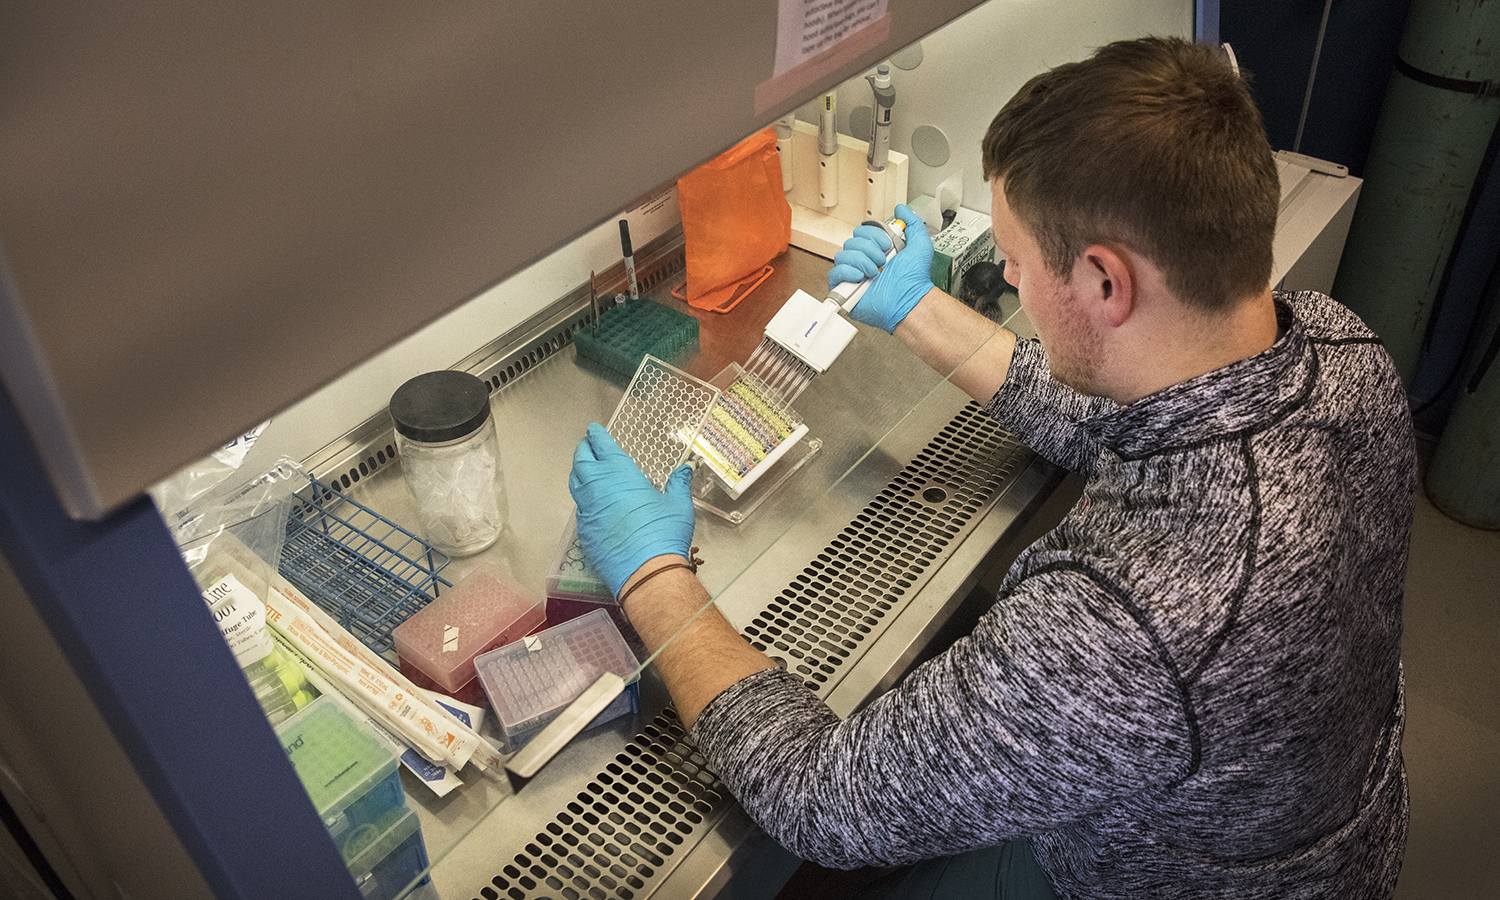 Andrew Herrmann '19 tests small molecules in order target a key component in cancer cell growth. The molecules were synthesized by fellow students in Professor of Chemistry Erin Pelkey's lab.